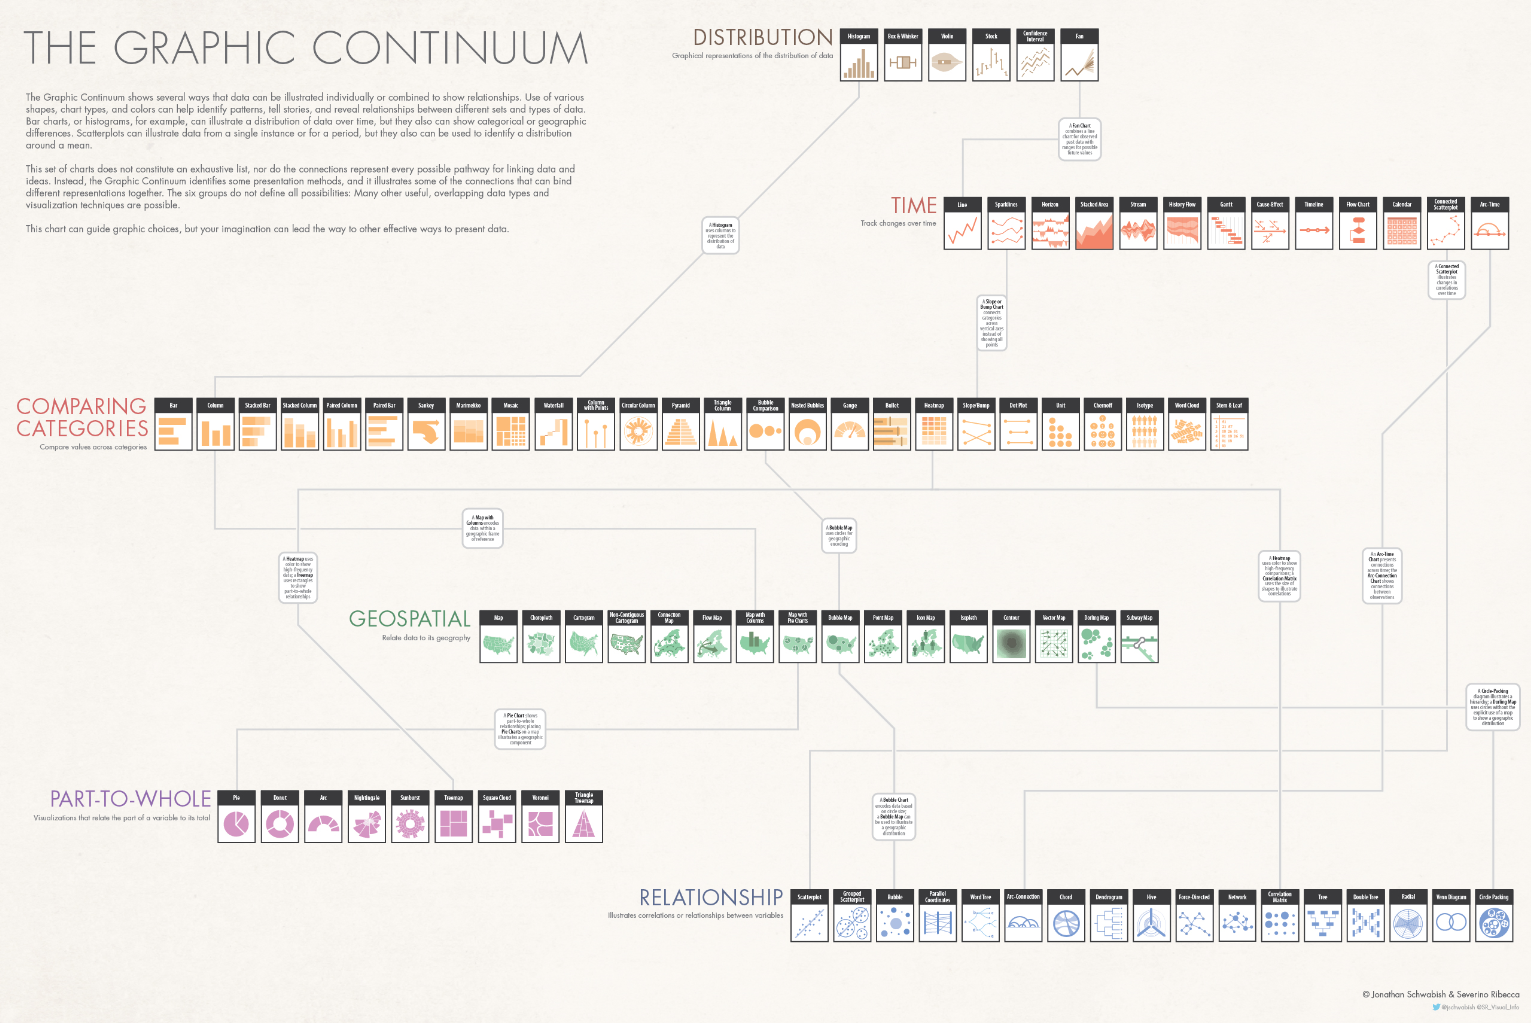 출처 : http://www.scribblelive.com/blog/2014/10/01/graphic-continuum/